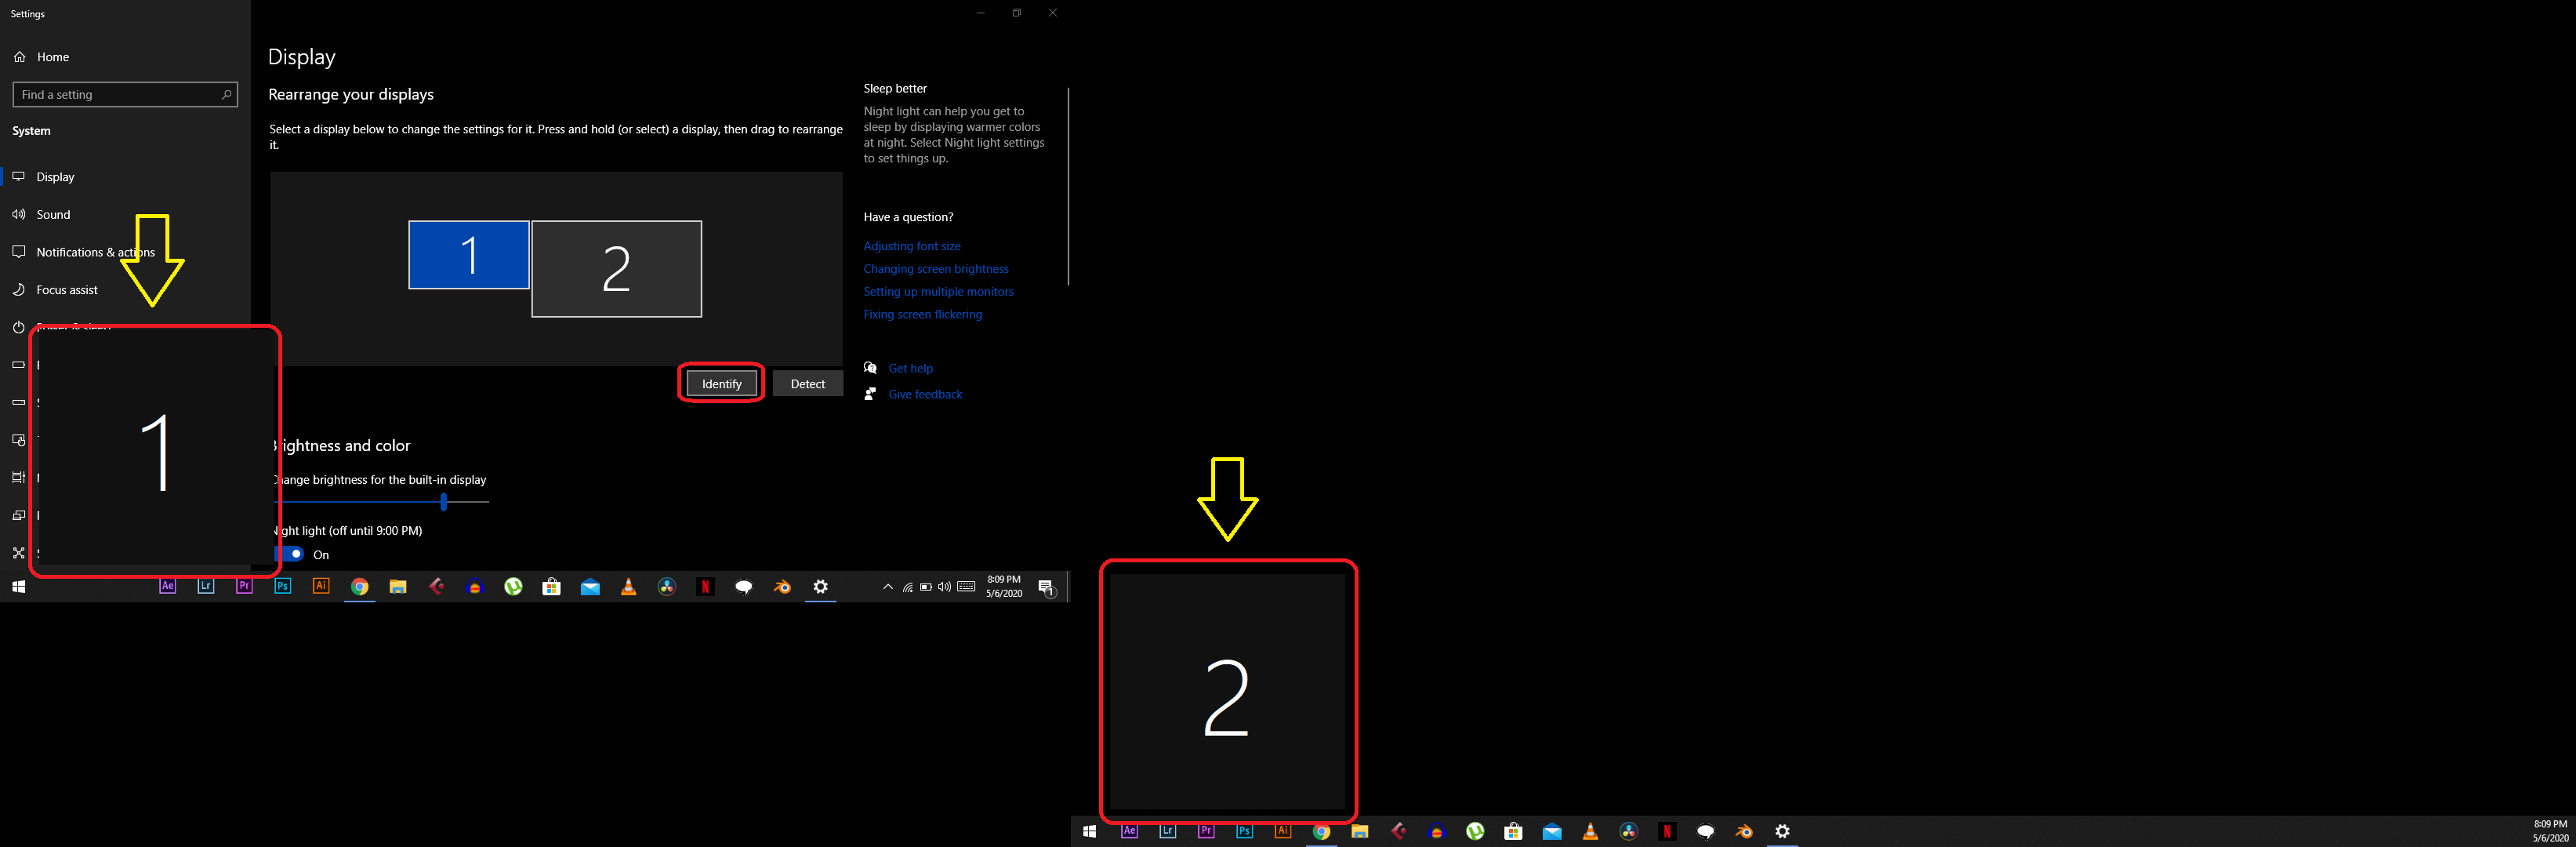 How to Use Two Displays on Windows 10